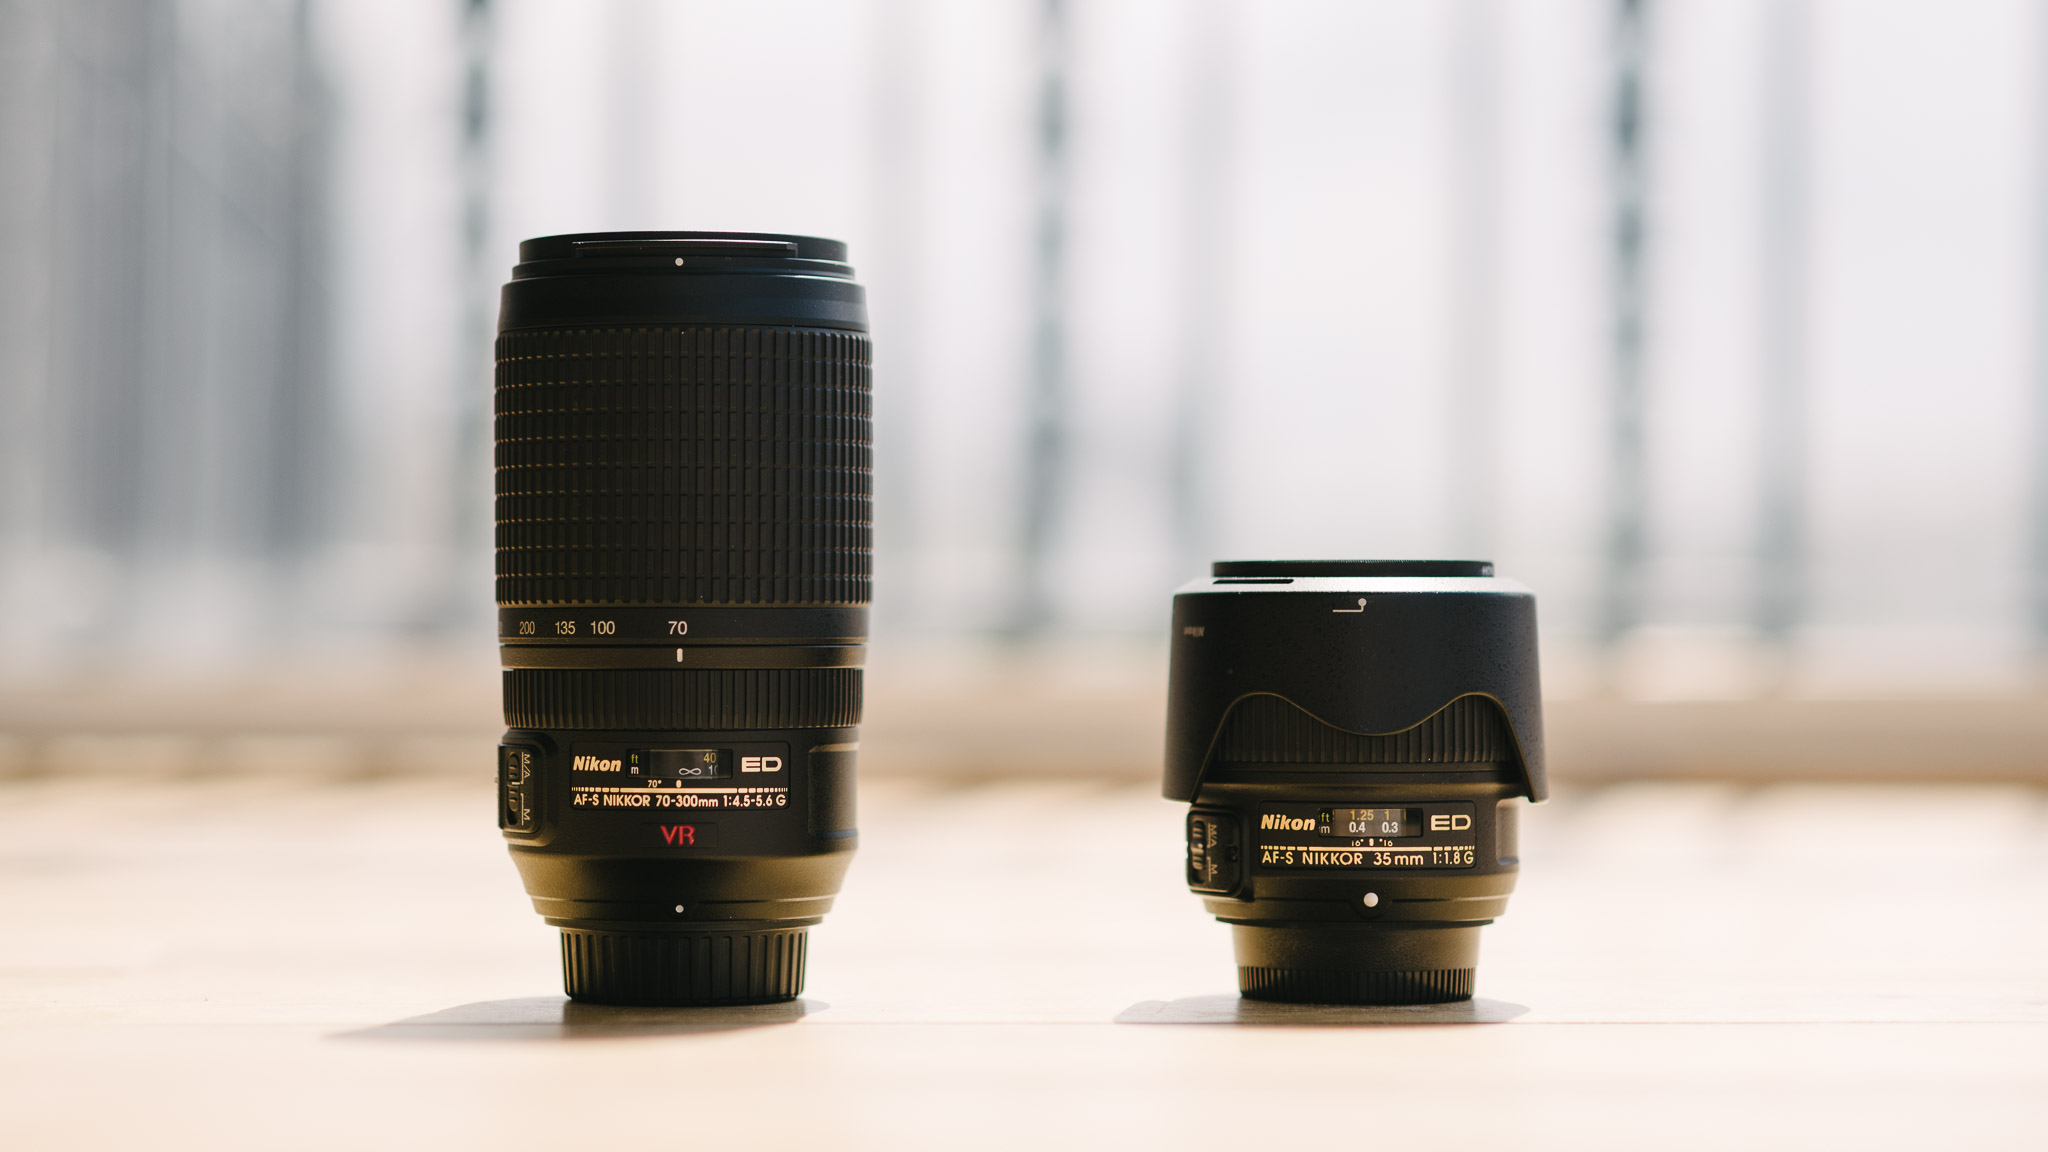 two lenses for full-frame cameras: nikkor 70-300mm f/4.5-5.6 and nikkor 35mm f/1.8